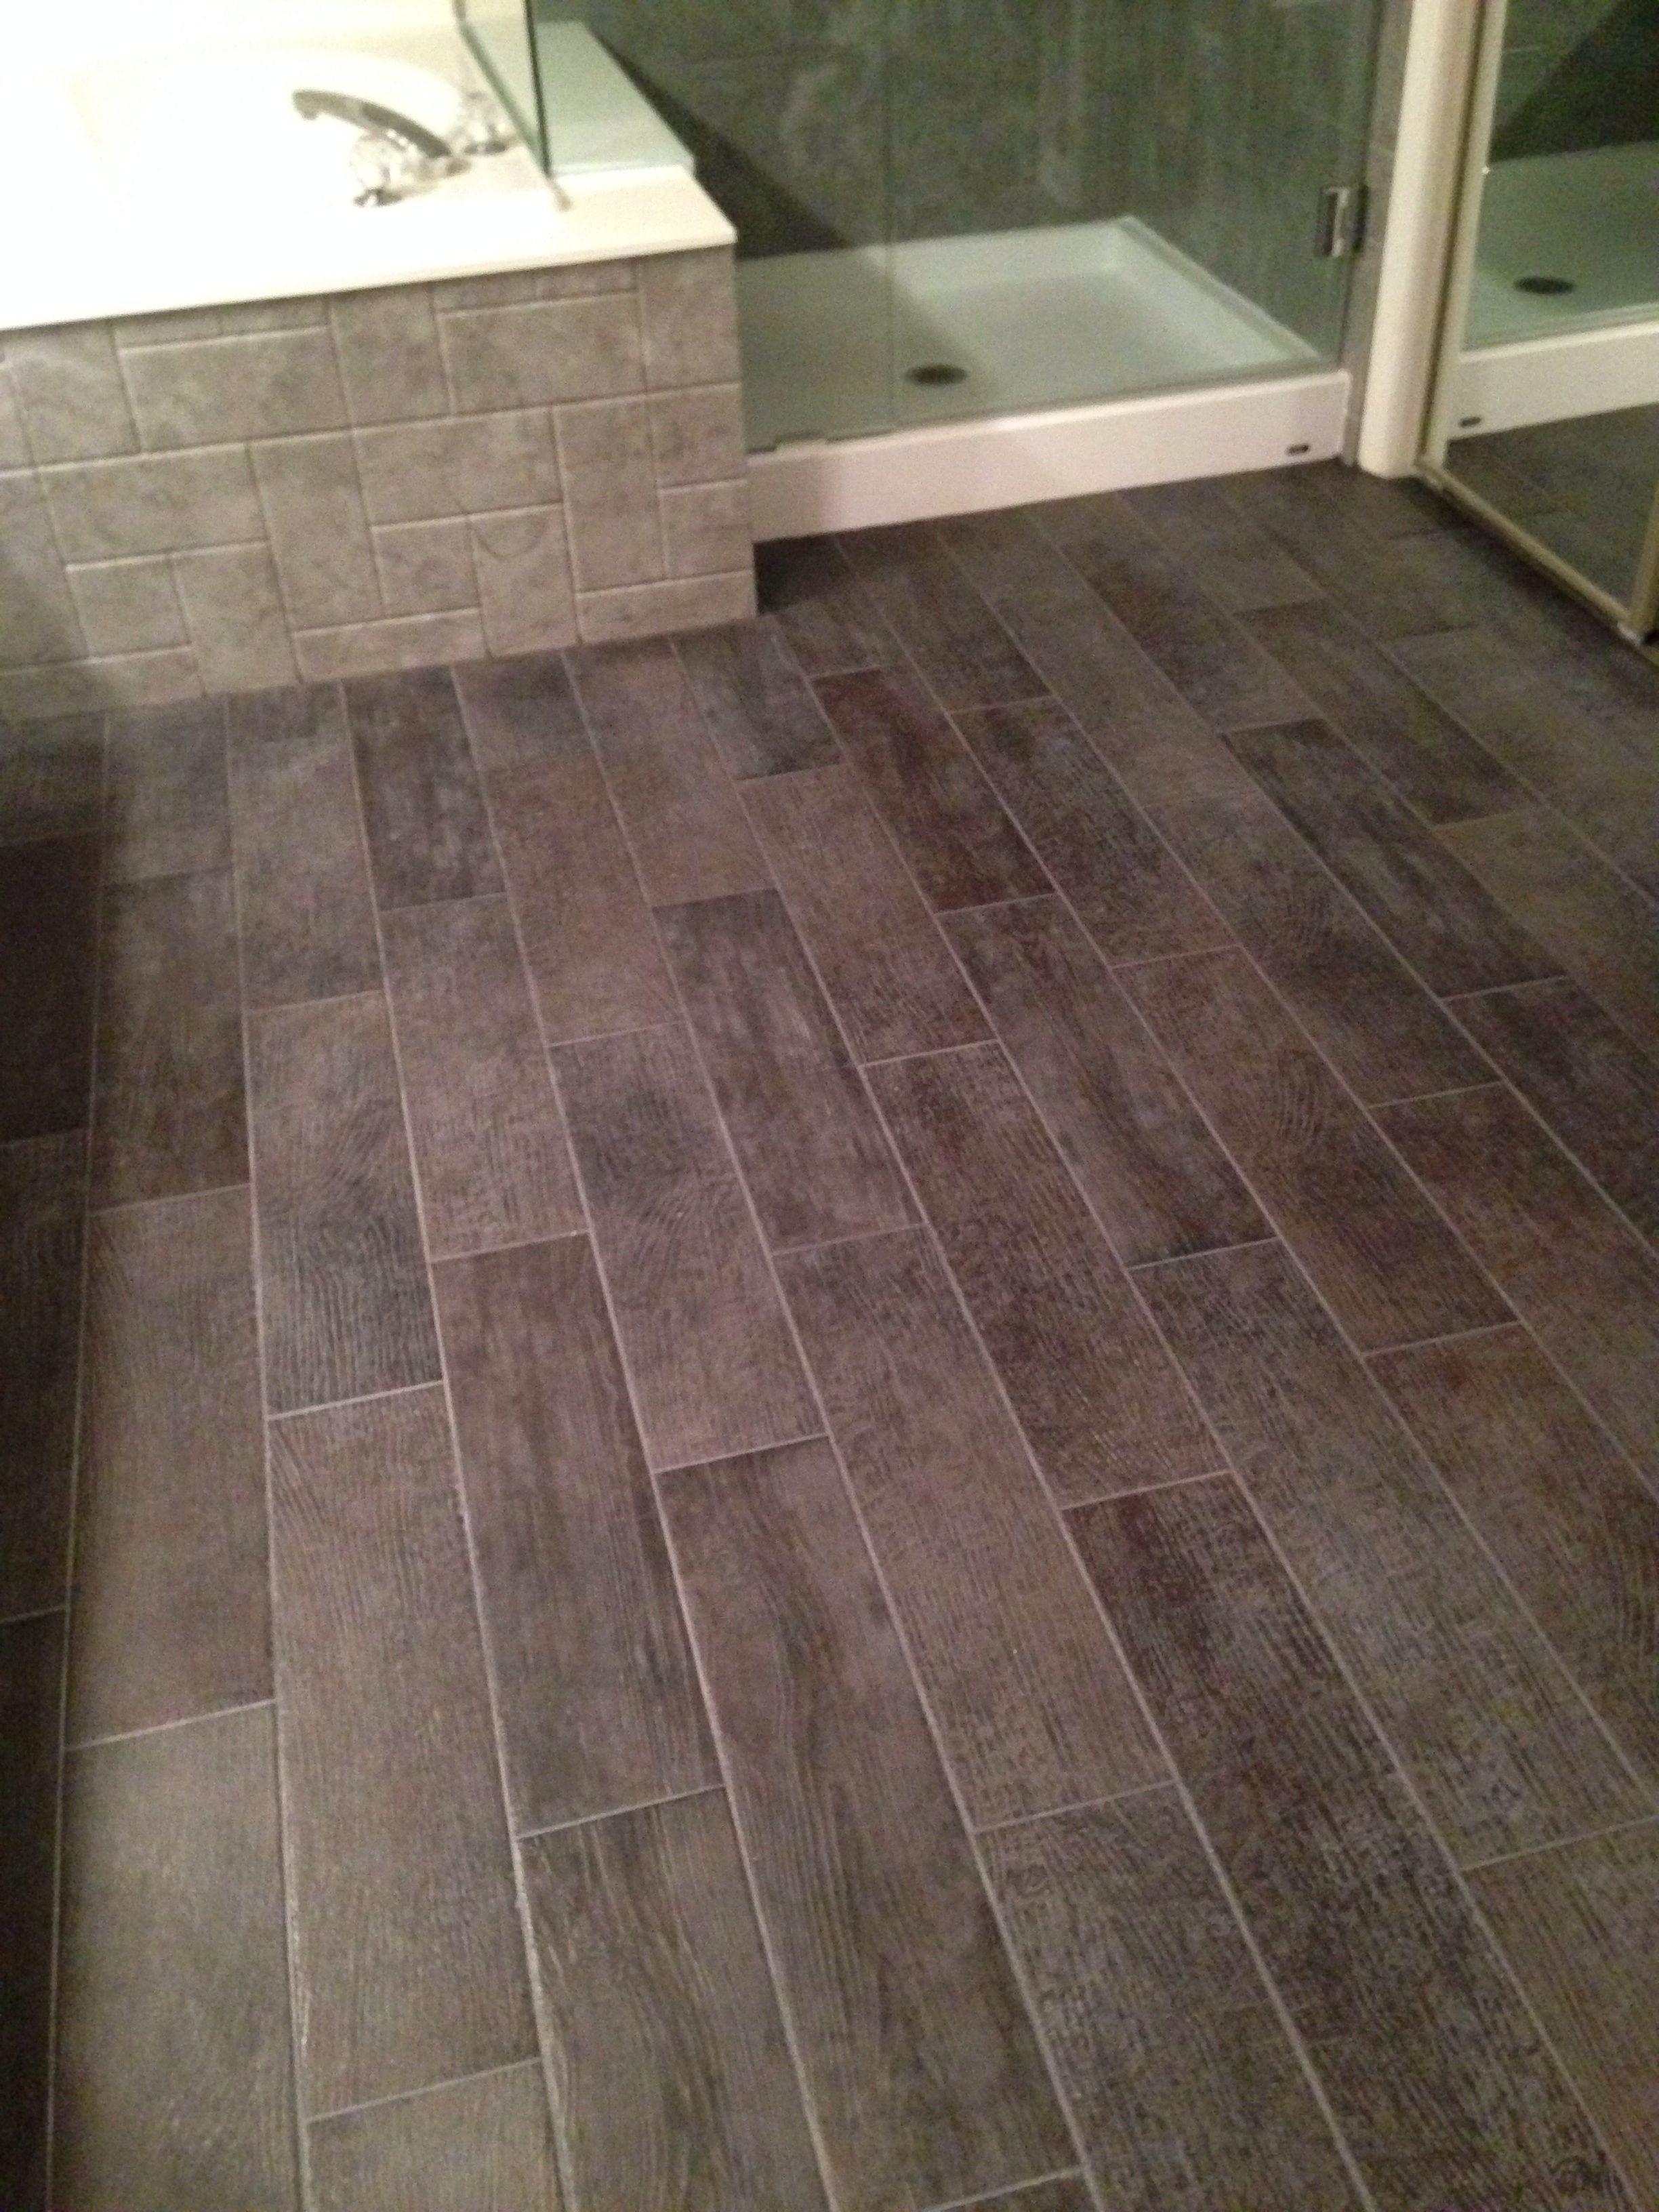 Bathroom floor- 6x24 tiles charcoal gray. Look like wood ...